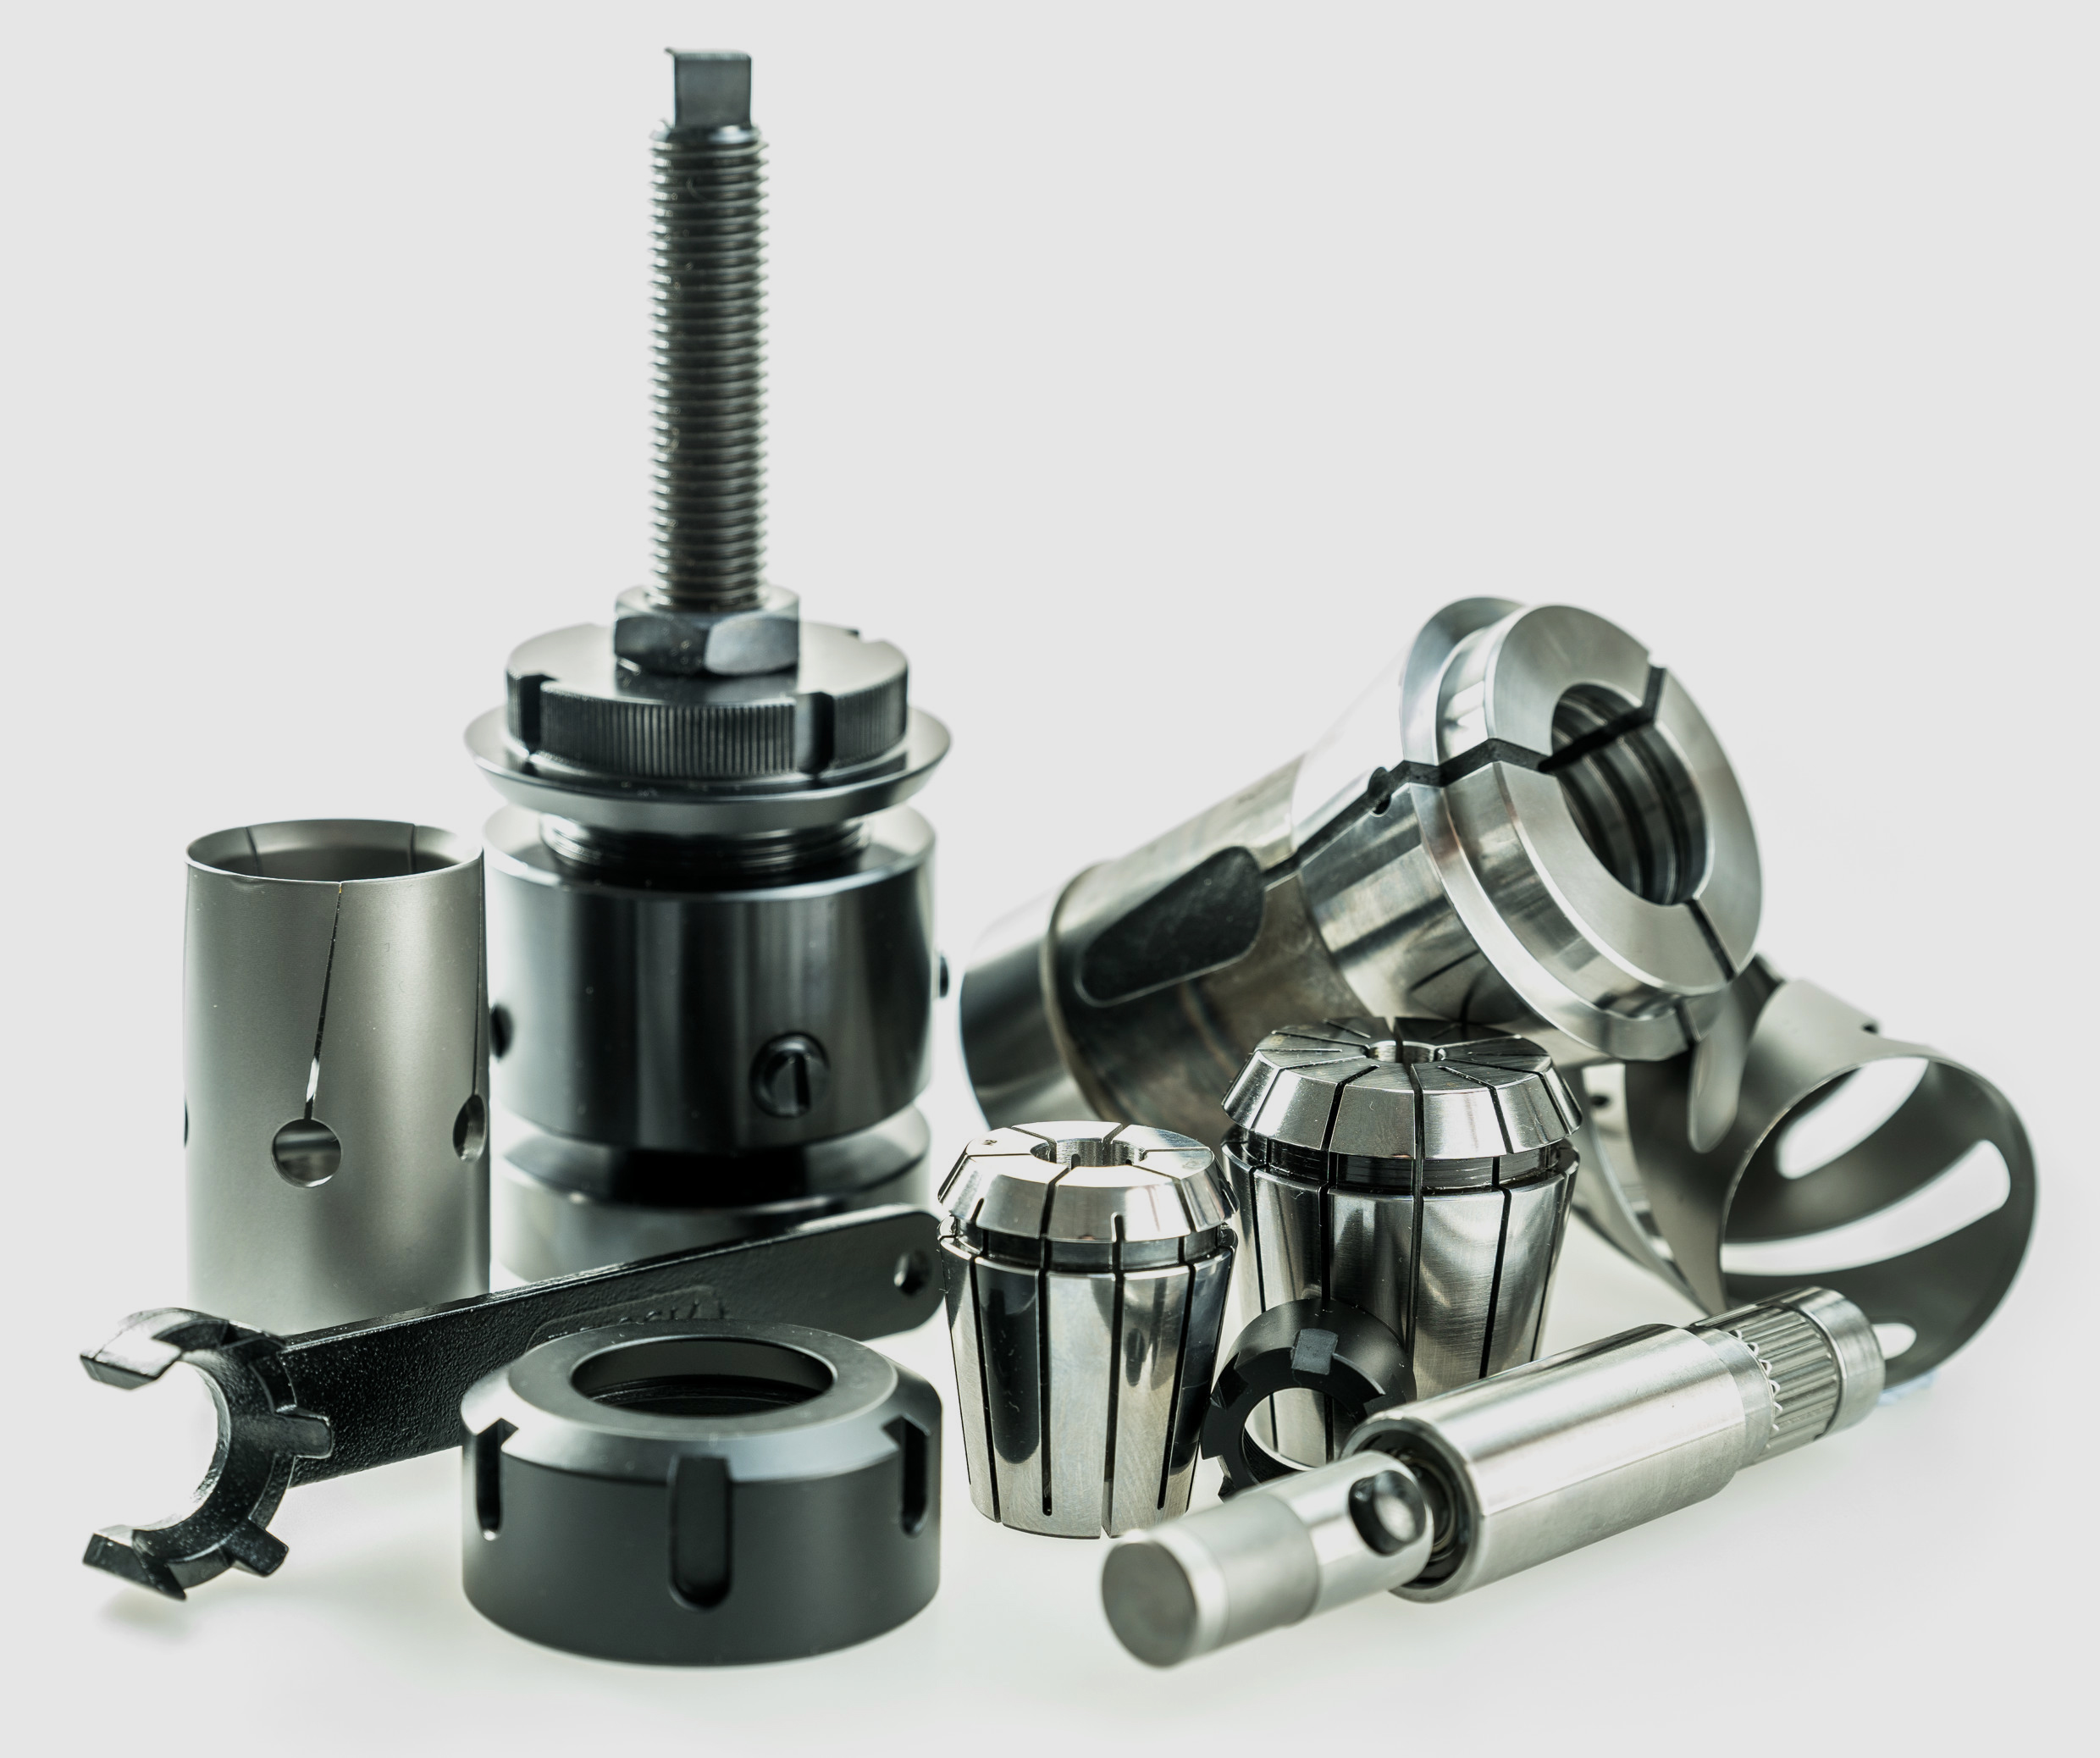 Workpiece and tool clampings itmes